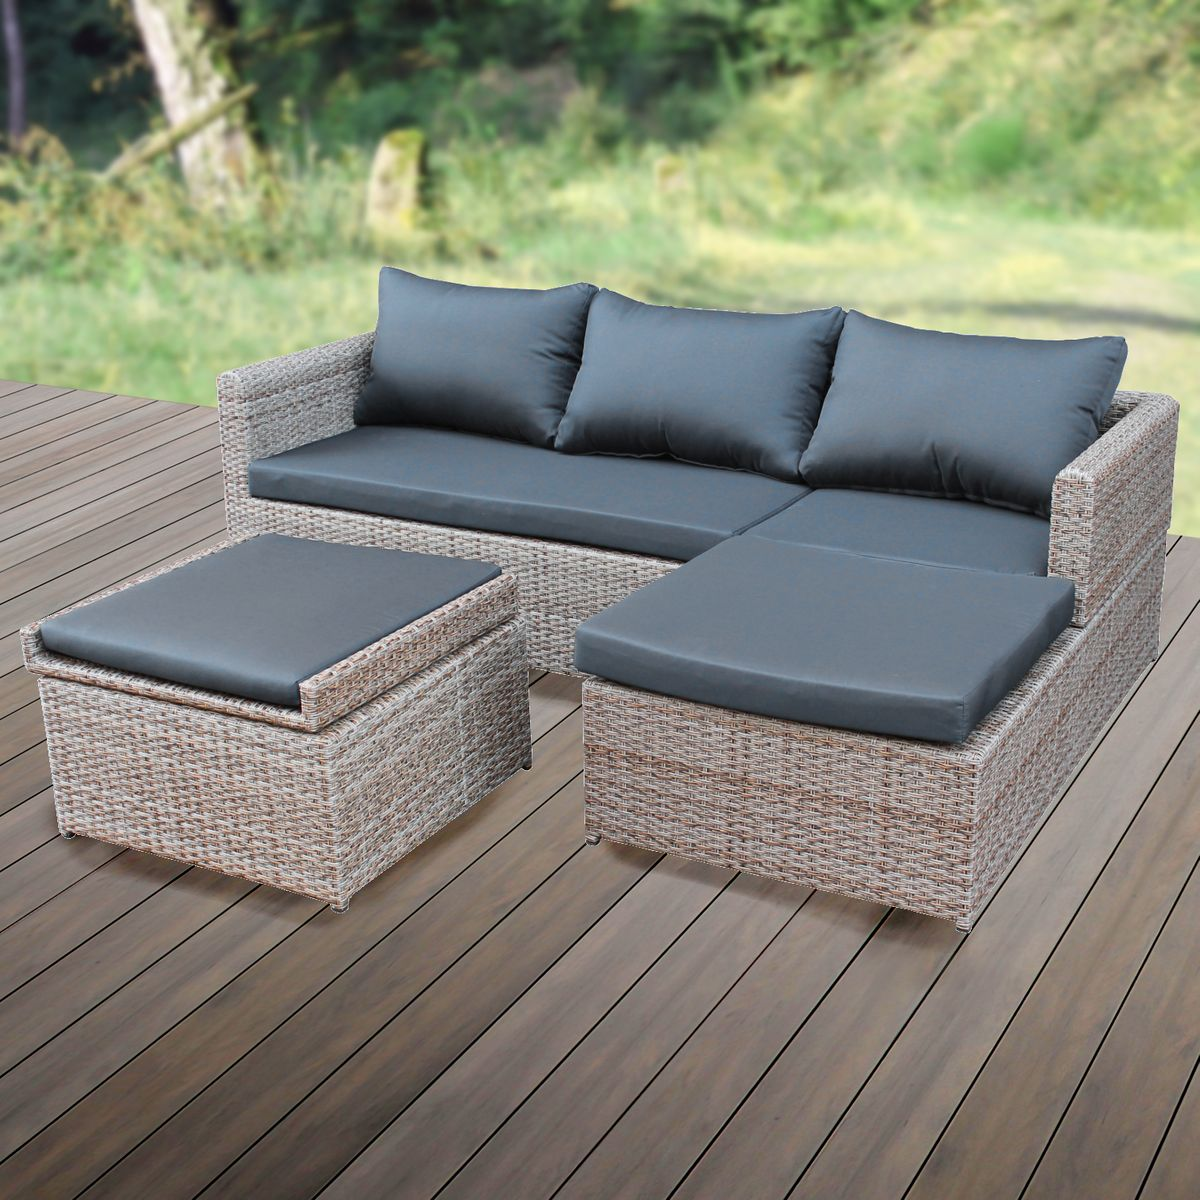 gartenm bel rattan lounge. Black Bedroom Furniture Sets. Home Design Ideas